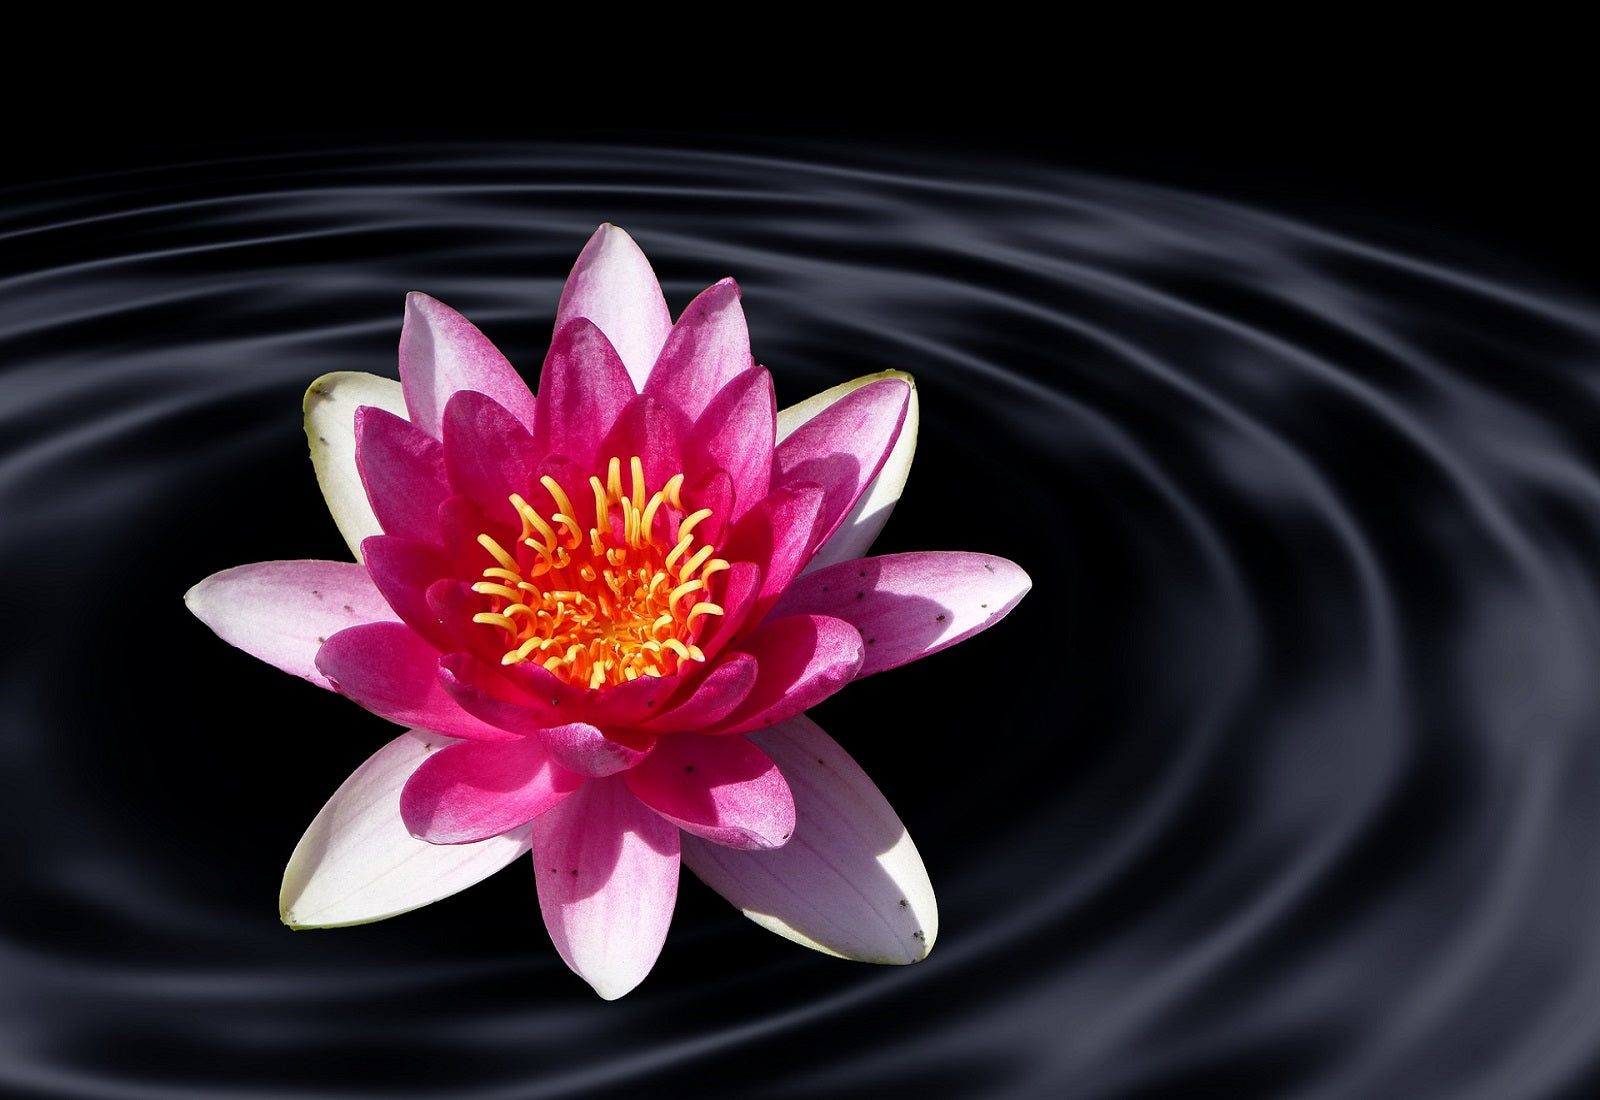 Lotus Flower Meaning Yoga Spirituality Symbolism Stephanie Rose